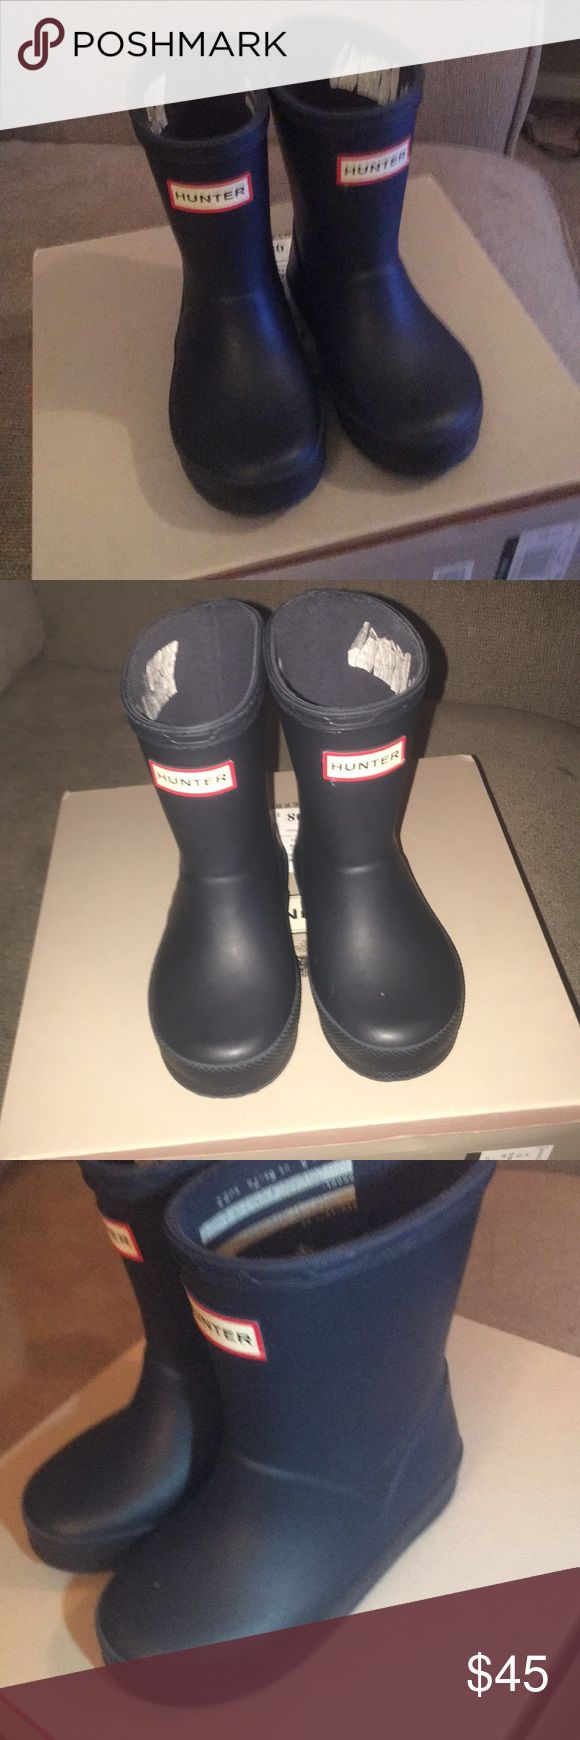 Unisex Toddler Hunter RainBoots NavyBlue 5 UK/6 US Toddler rain boots great for boys or girls. Purchased from Nordstrom about this time last year, they were too big and would just fall off my daughter. Once she grew into them they were her favorite shoes because she could put them on all by herself. It's a testament to hunter boots because these still look amazing! The only way you can see they are worn is inside the sticker is coming off (I think it's supposed to be taken off anyways) as…